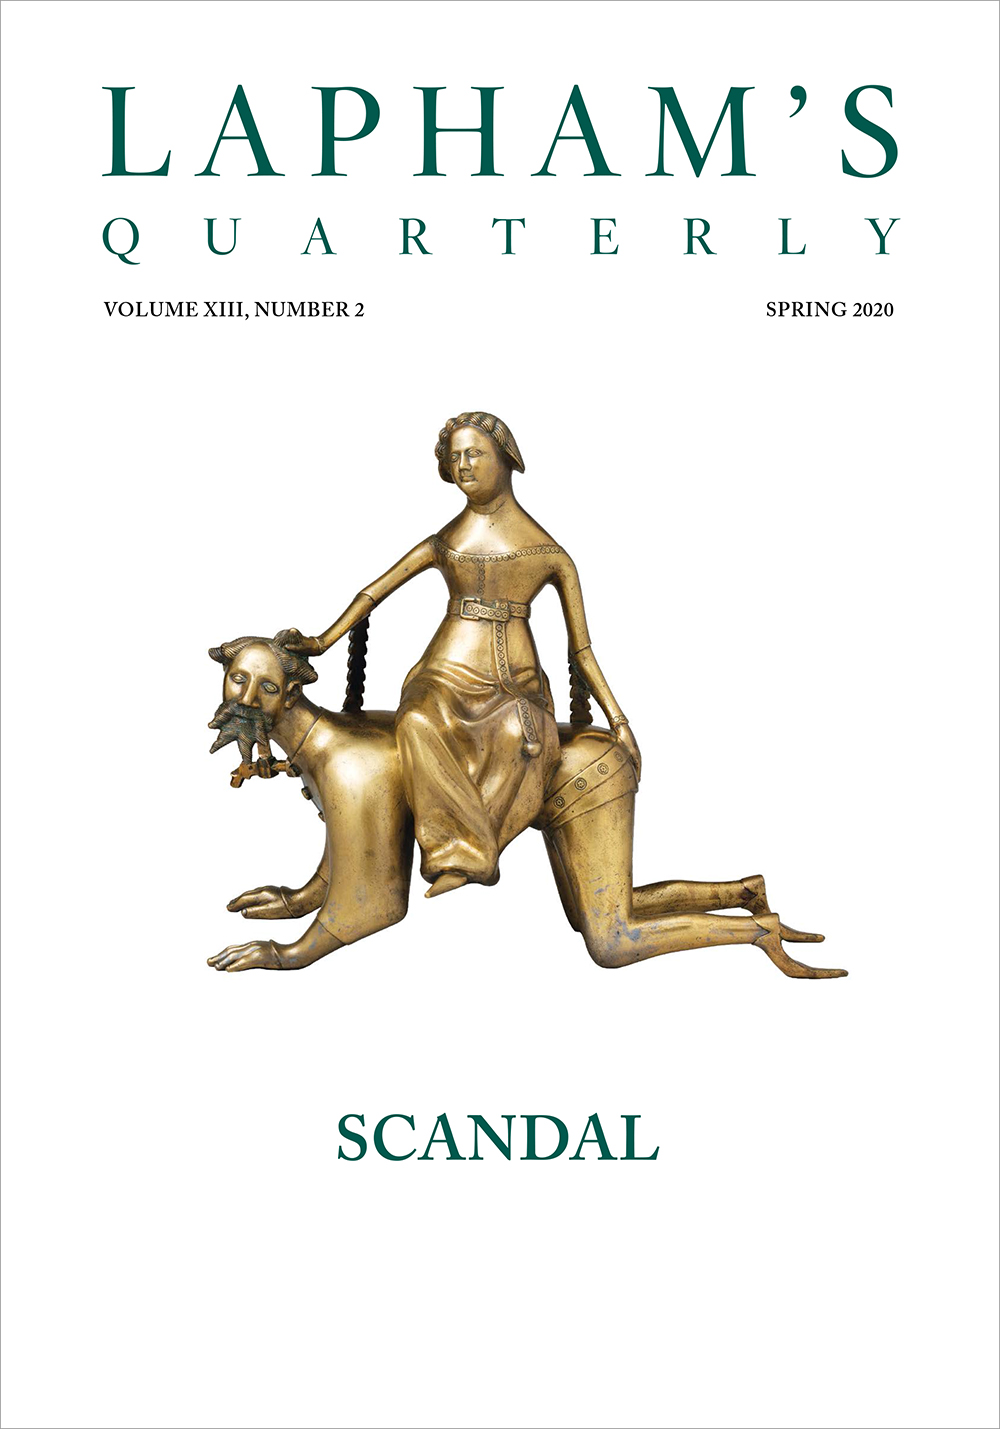 Cover of Scandal, the Spring 2020 issue of Lapham's Quarterly.